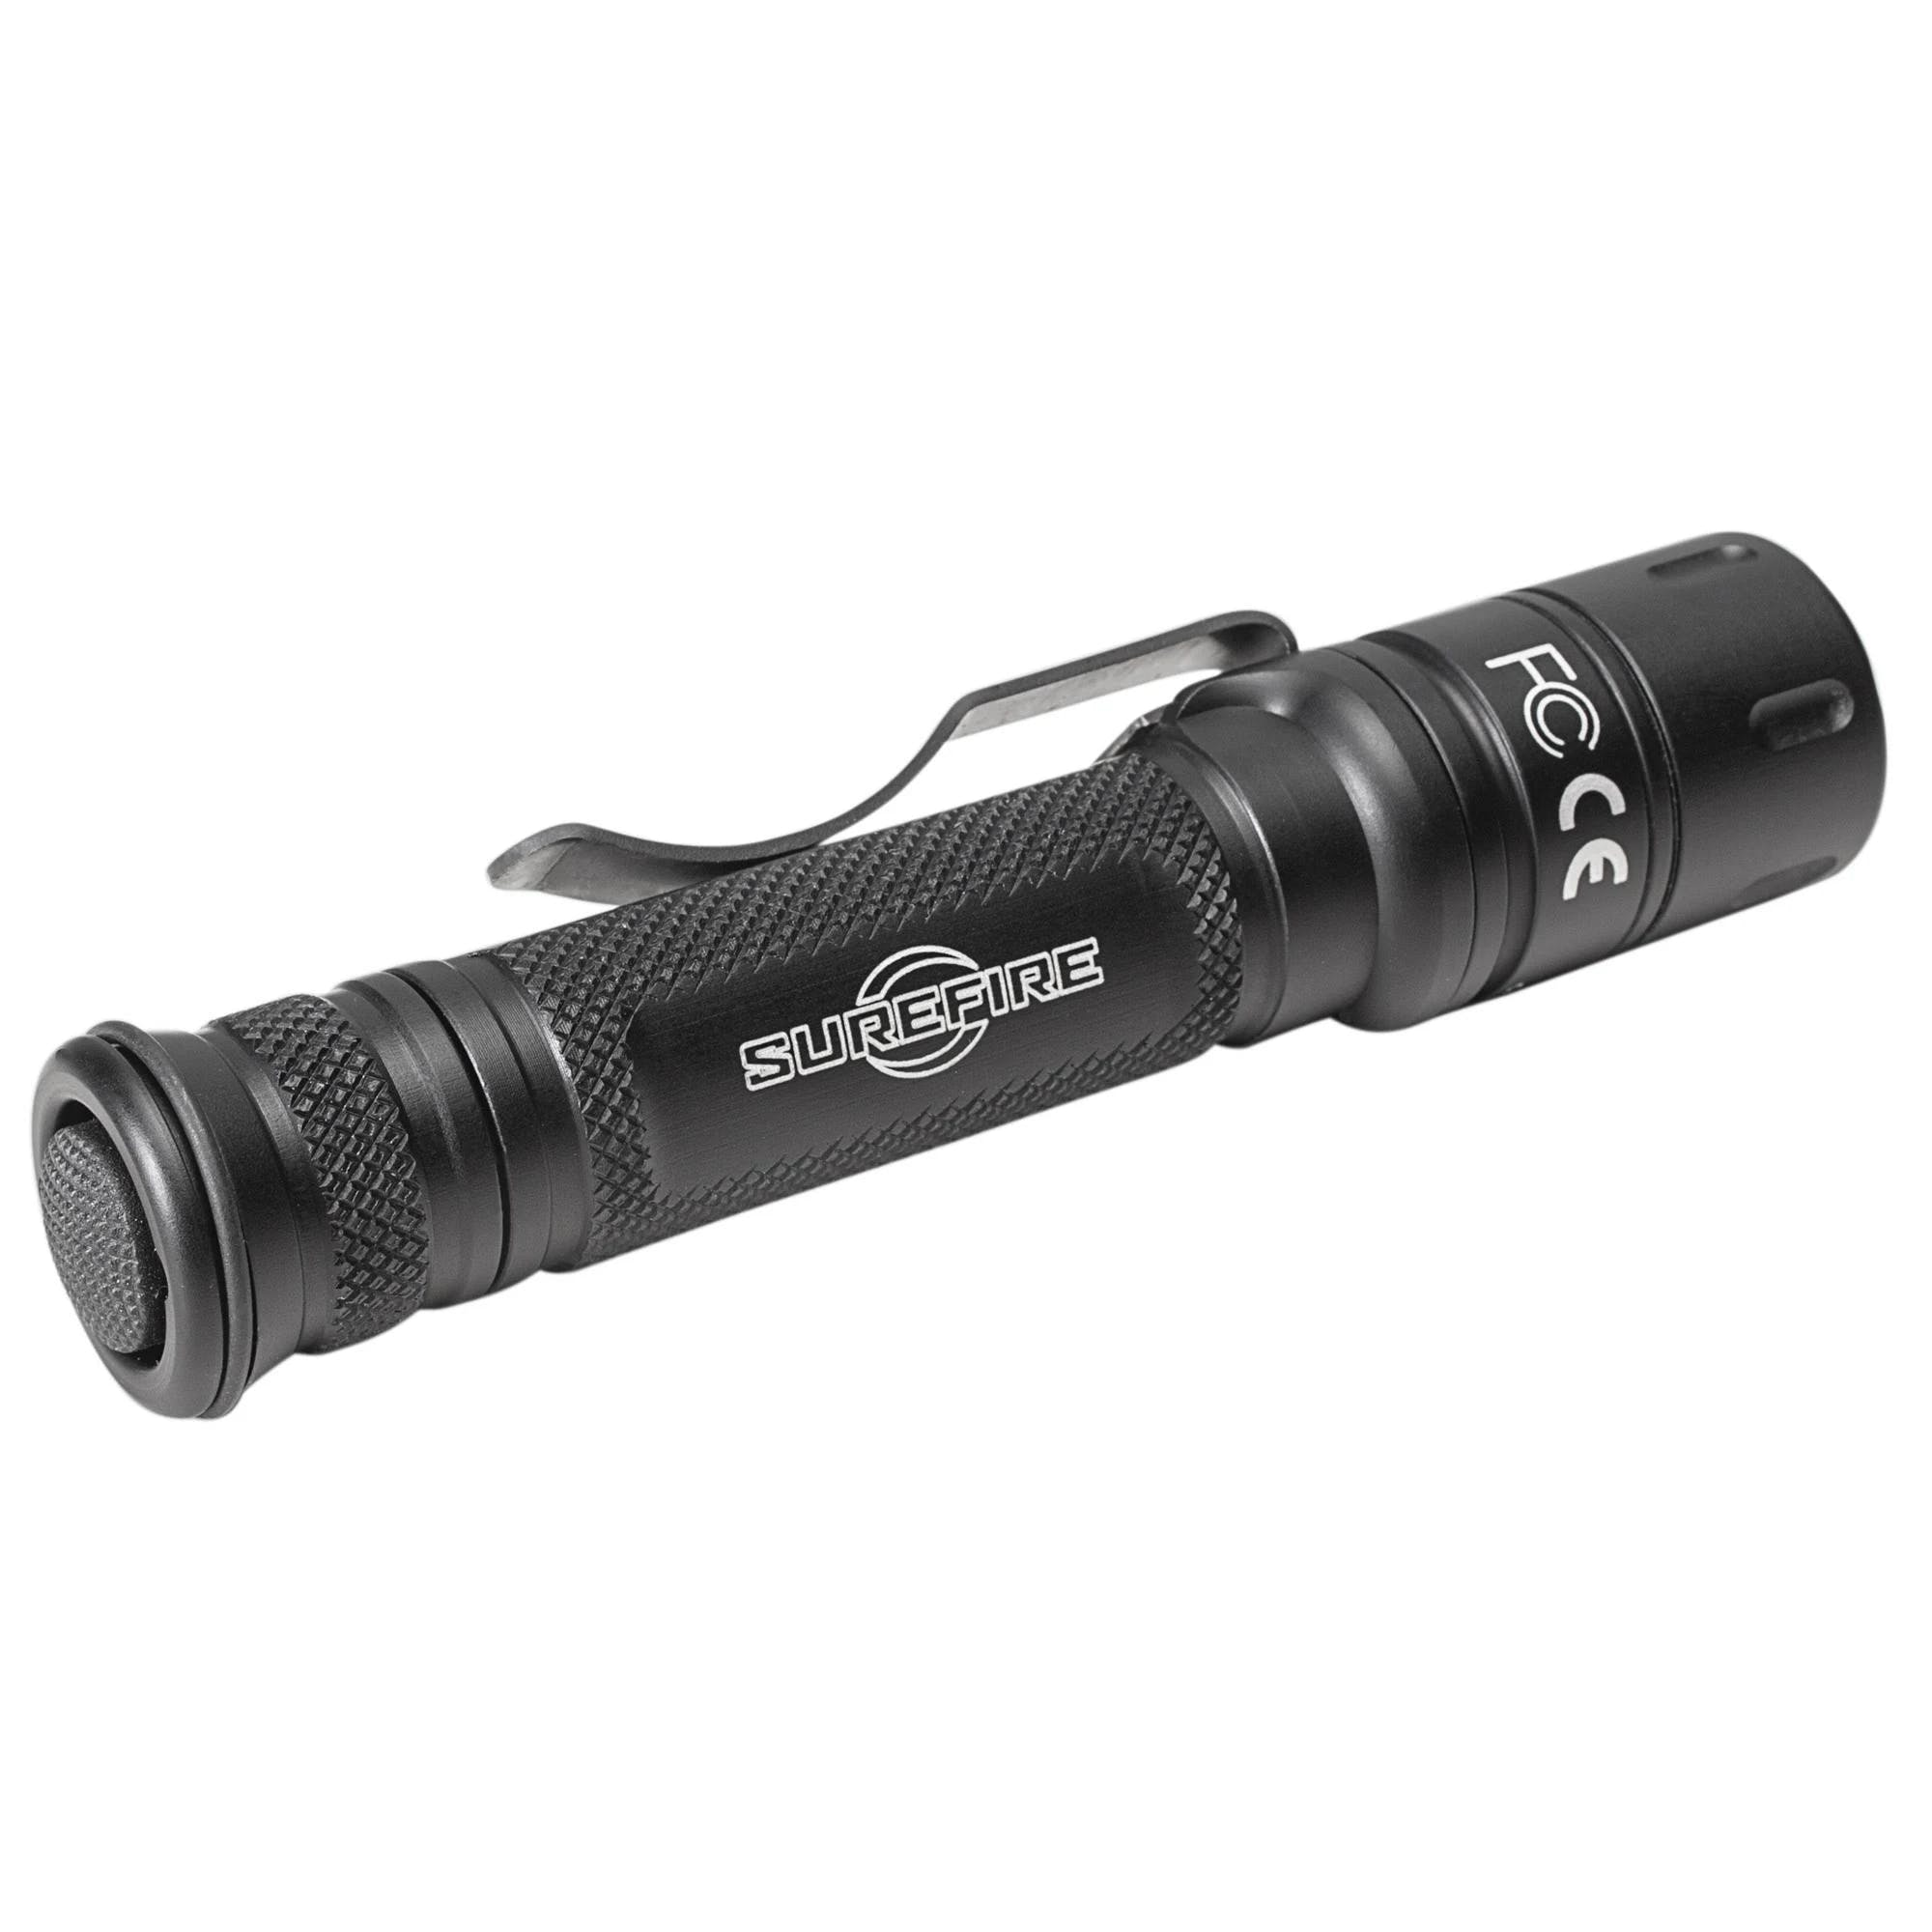 Surefire Tactician Flashlight